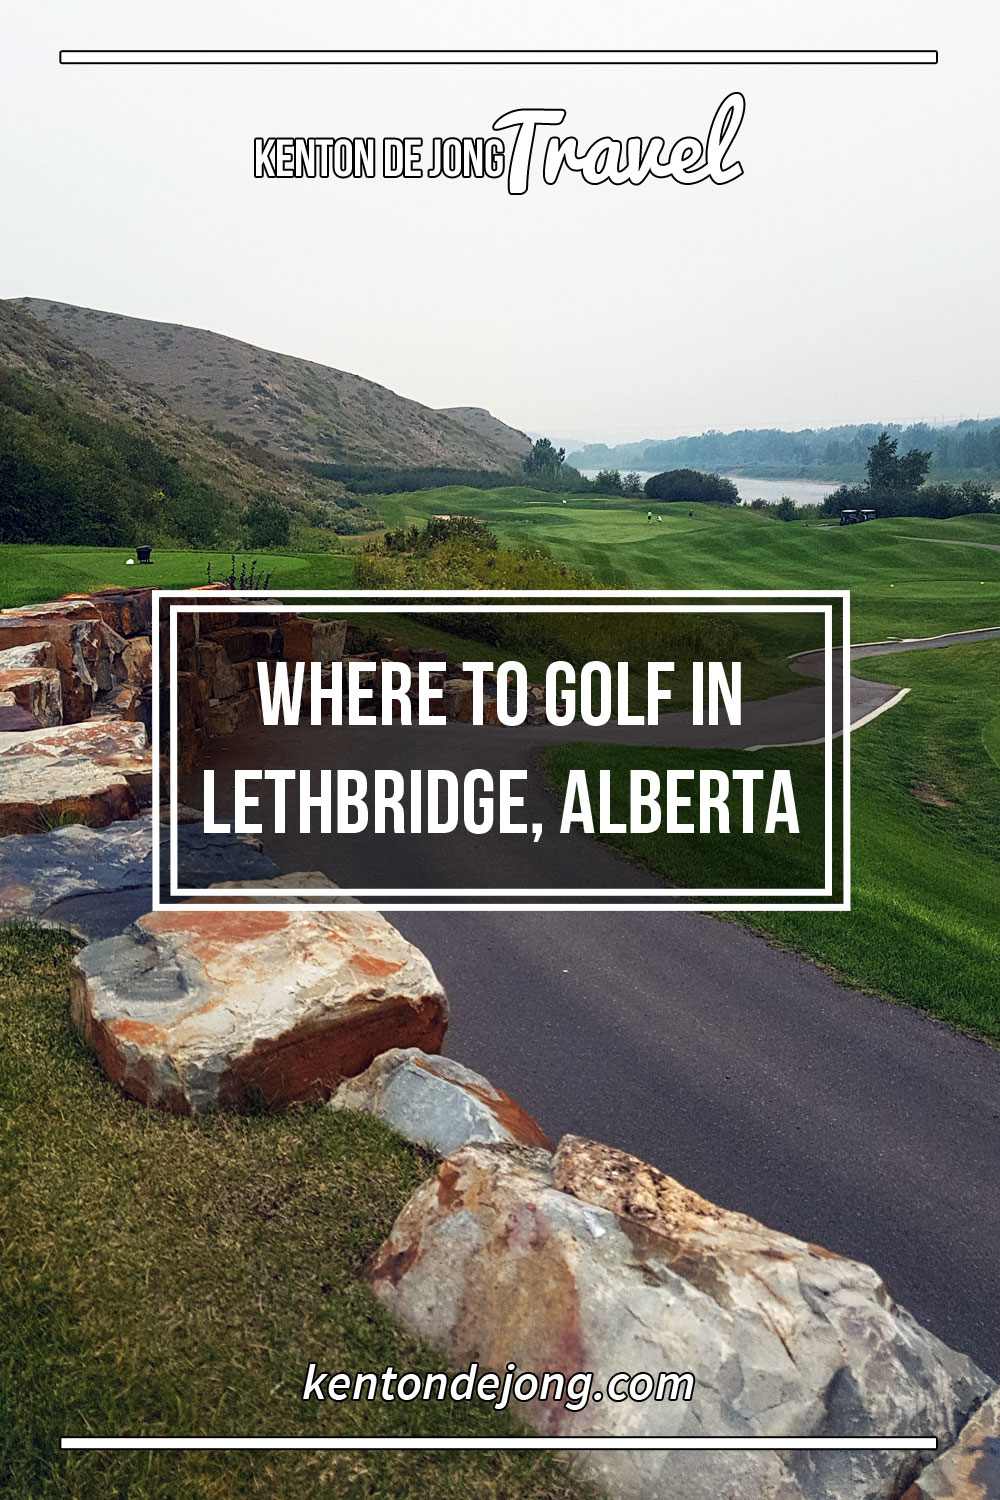 Where to Golf in Lethbridge, Alberta